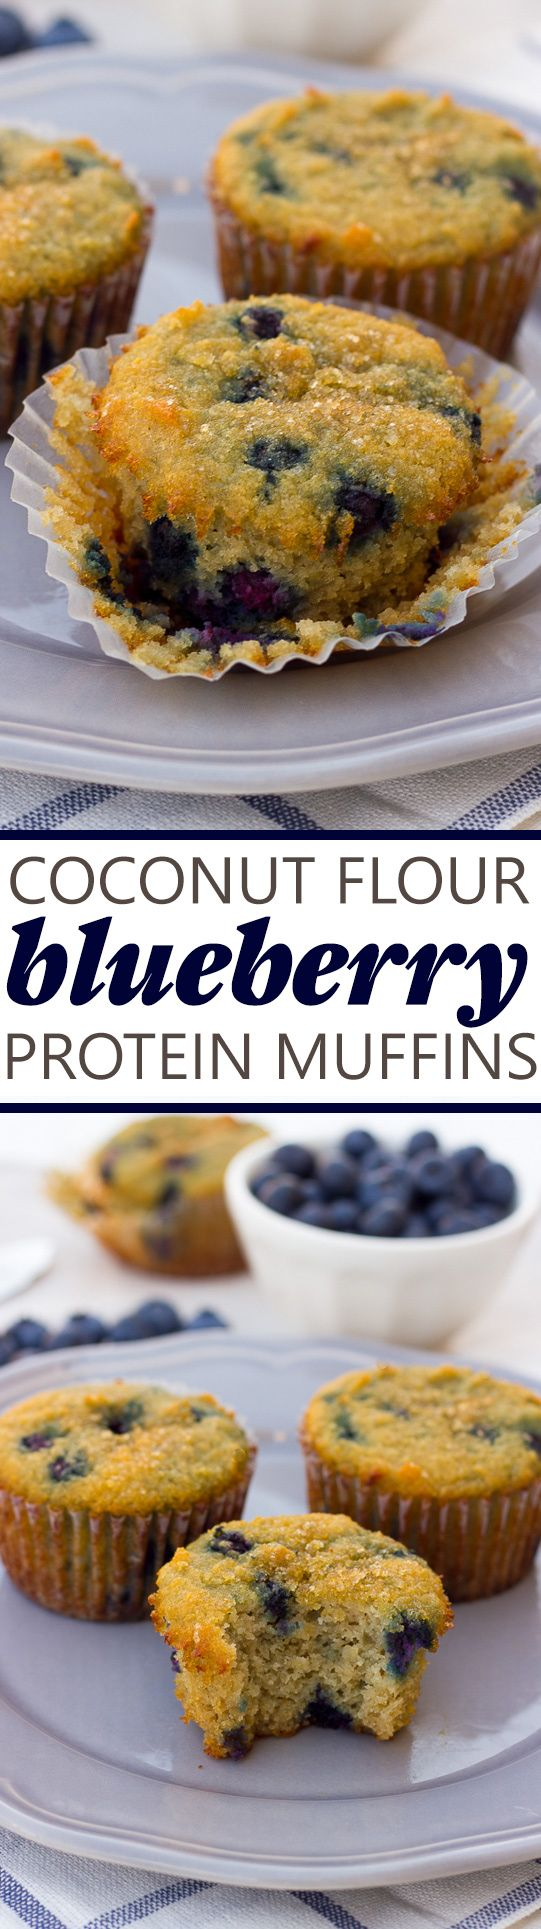 image for pinterest of coconut flour blueberry muffins